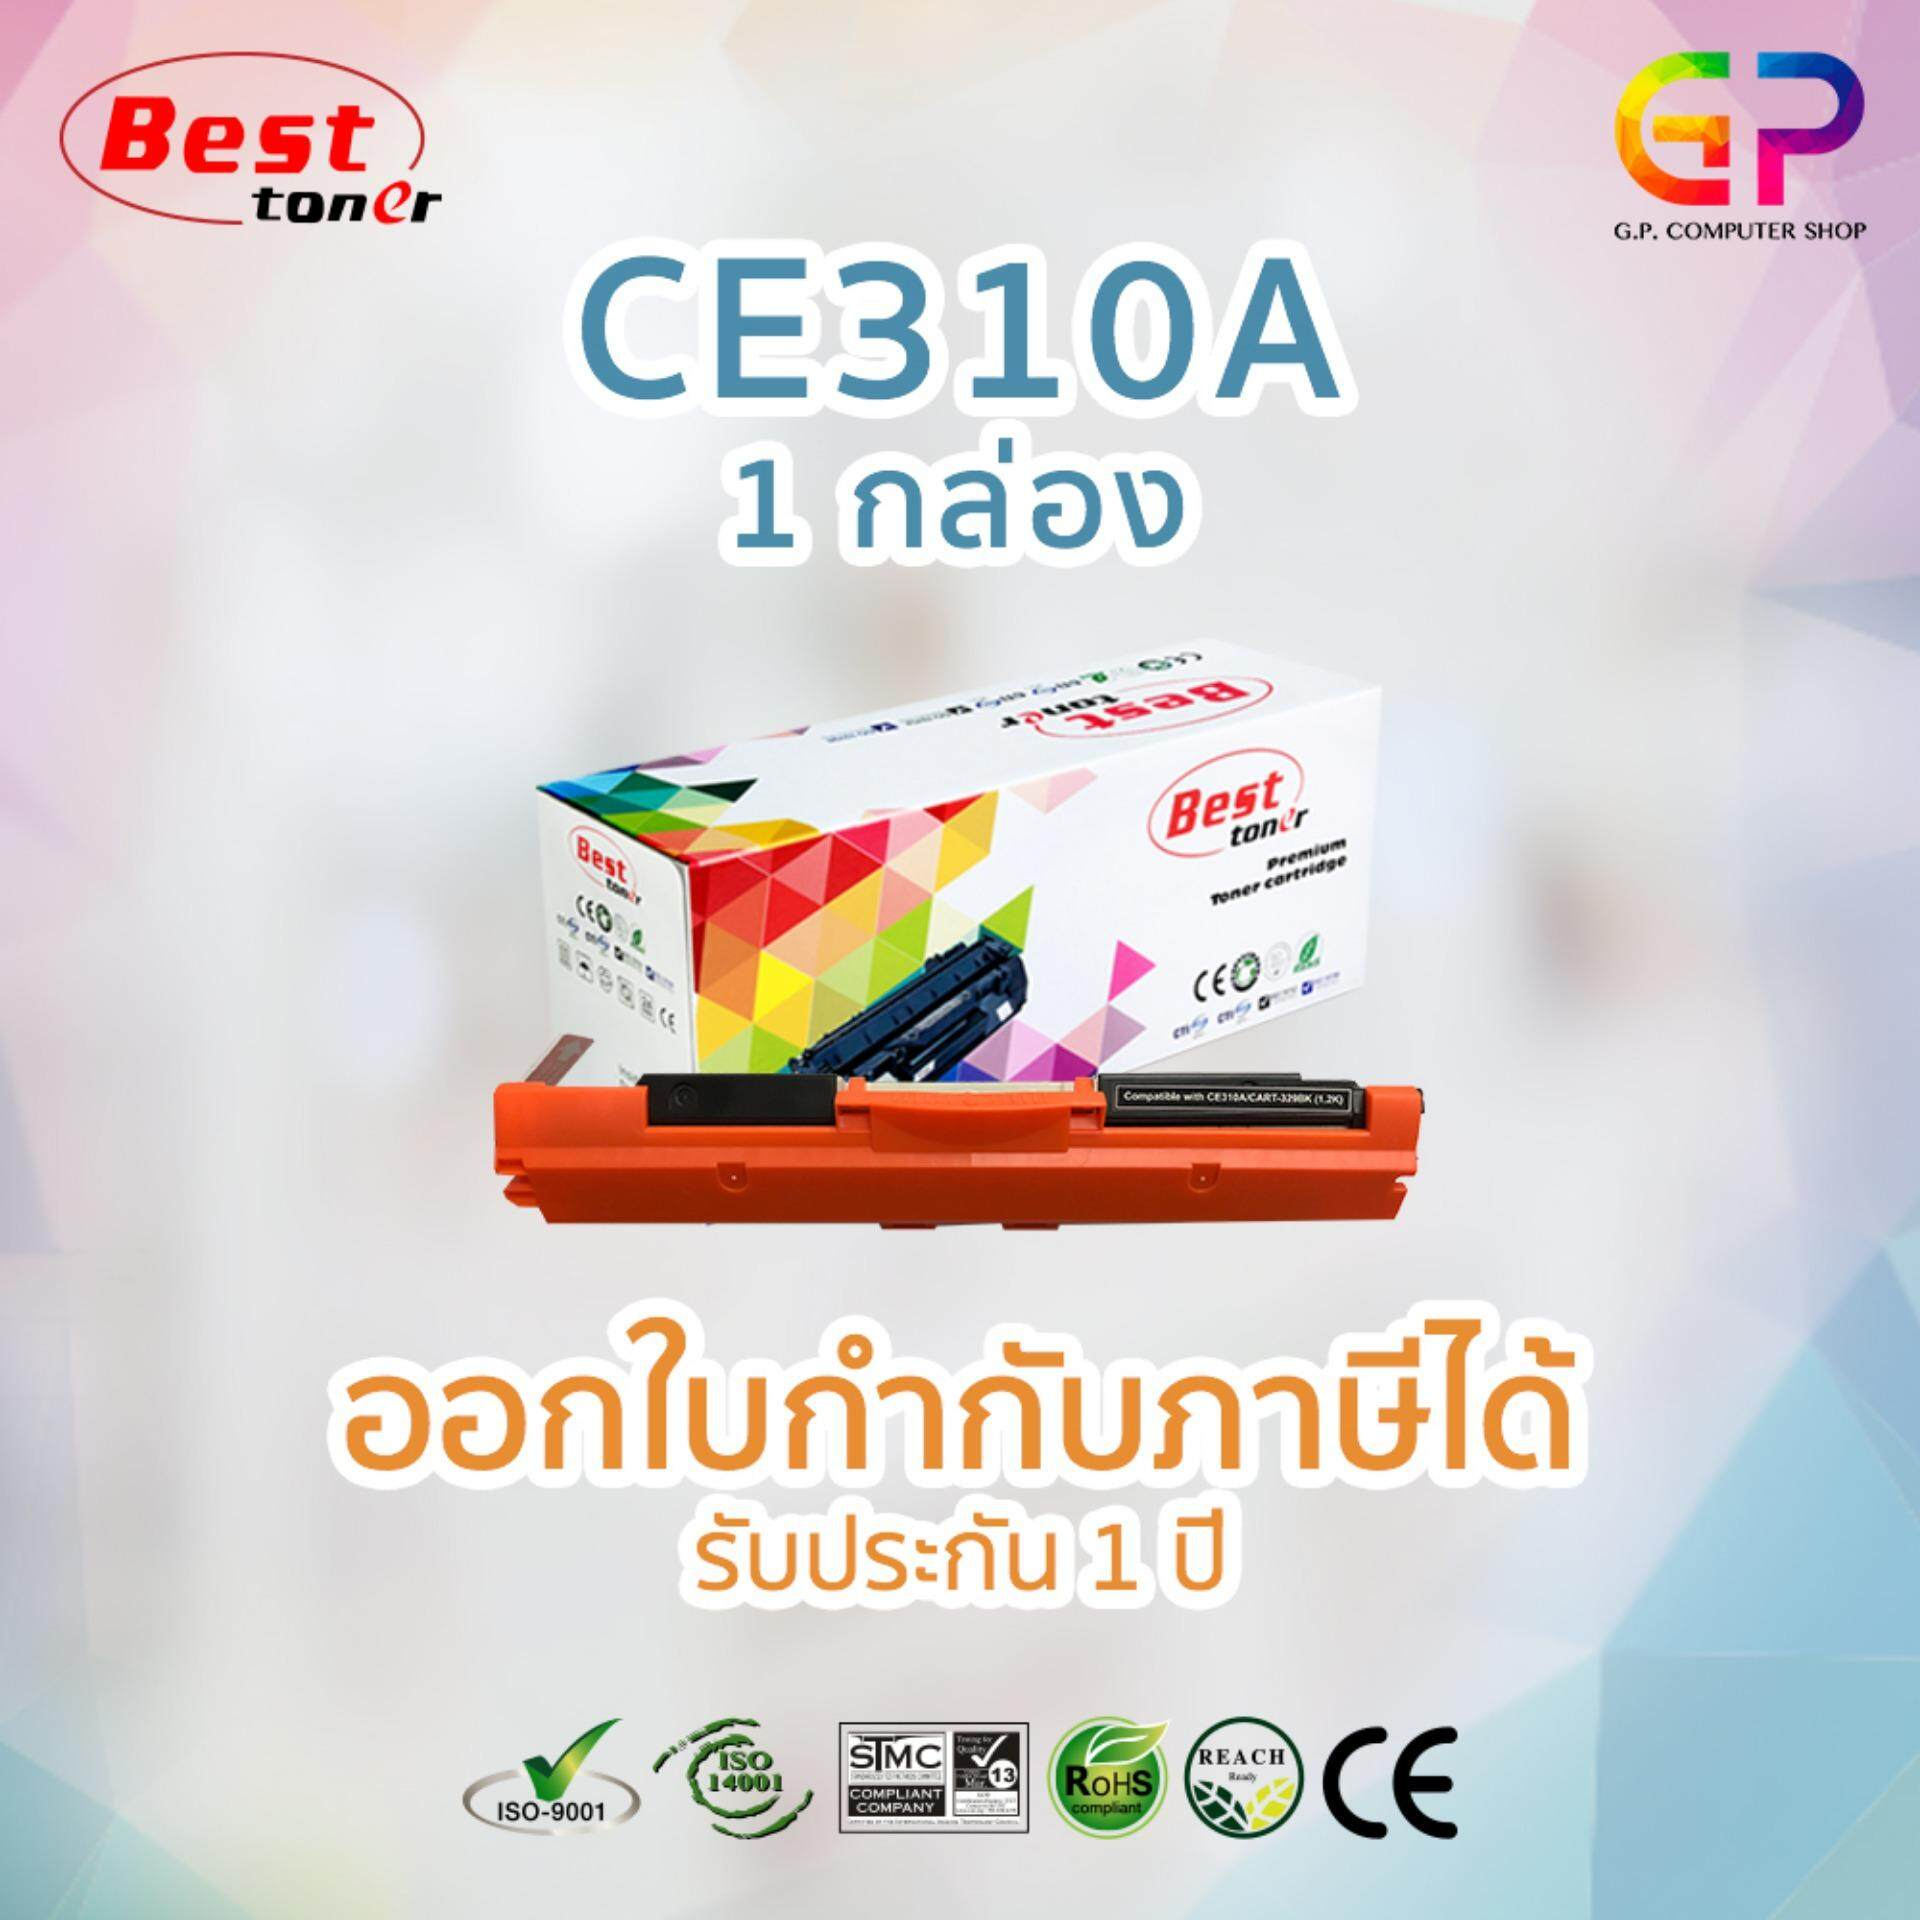 Best Toner HP CE310A BK /HP Color Laserjet  CP1025/M175a/M175nw (สีดำ)